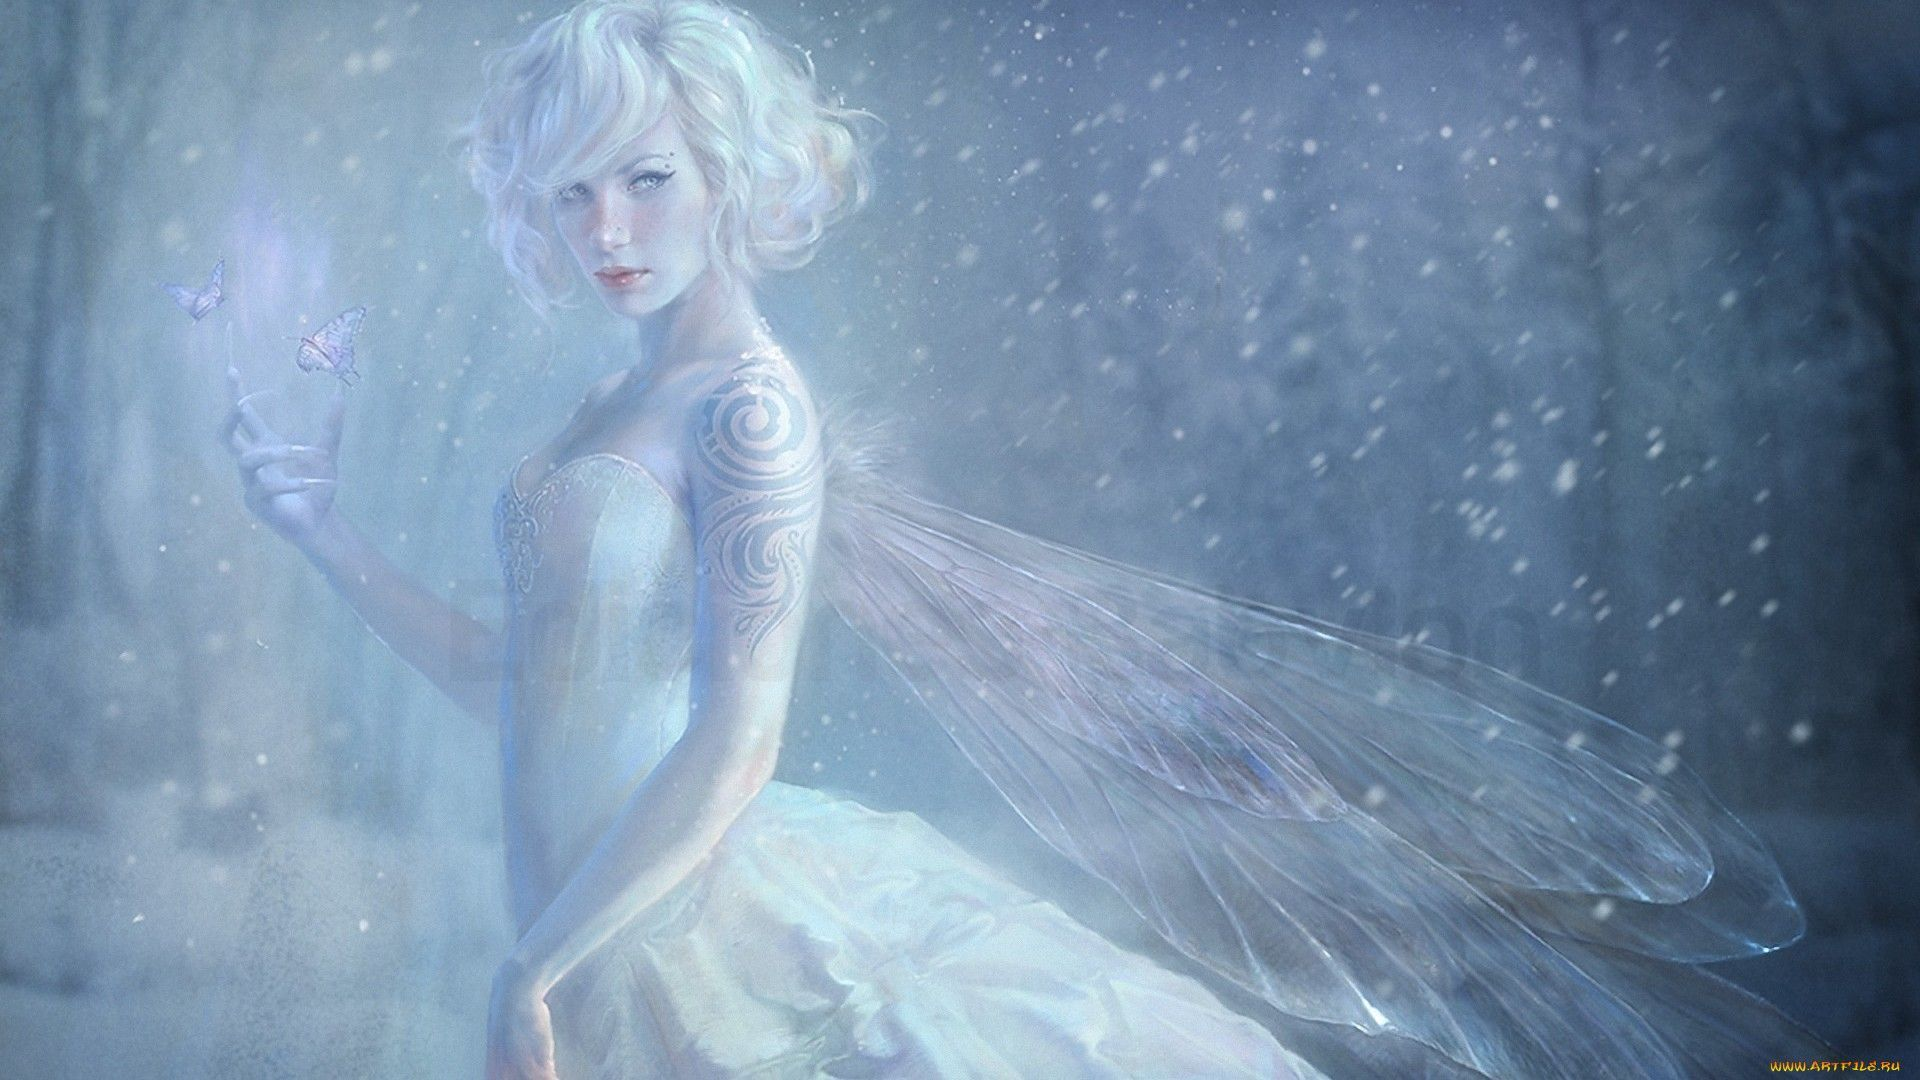 Free-Fairy-free-Dragon-page-of-Howard-David-%C3%97-Beautiful-Fairies-Wallpap-wallpaper-wp3805564